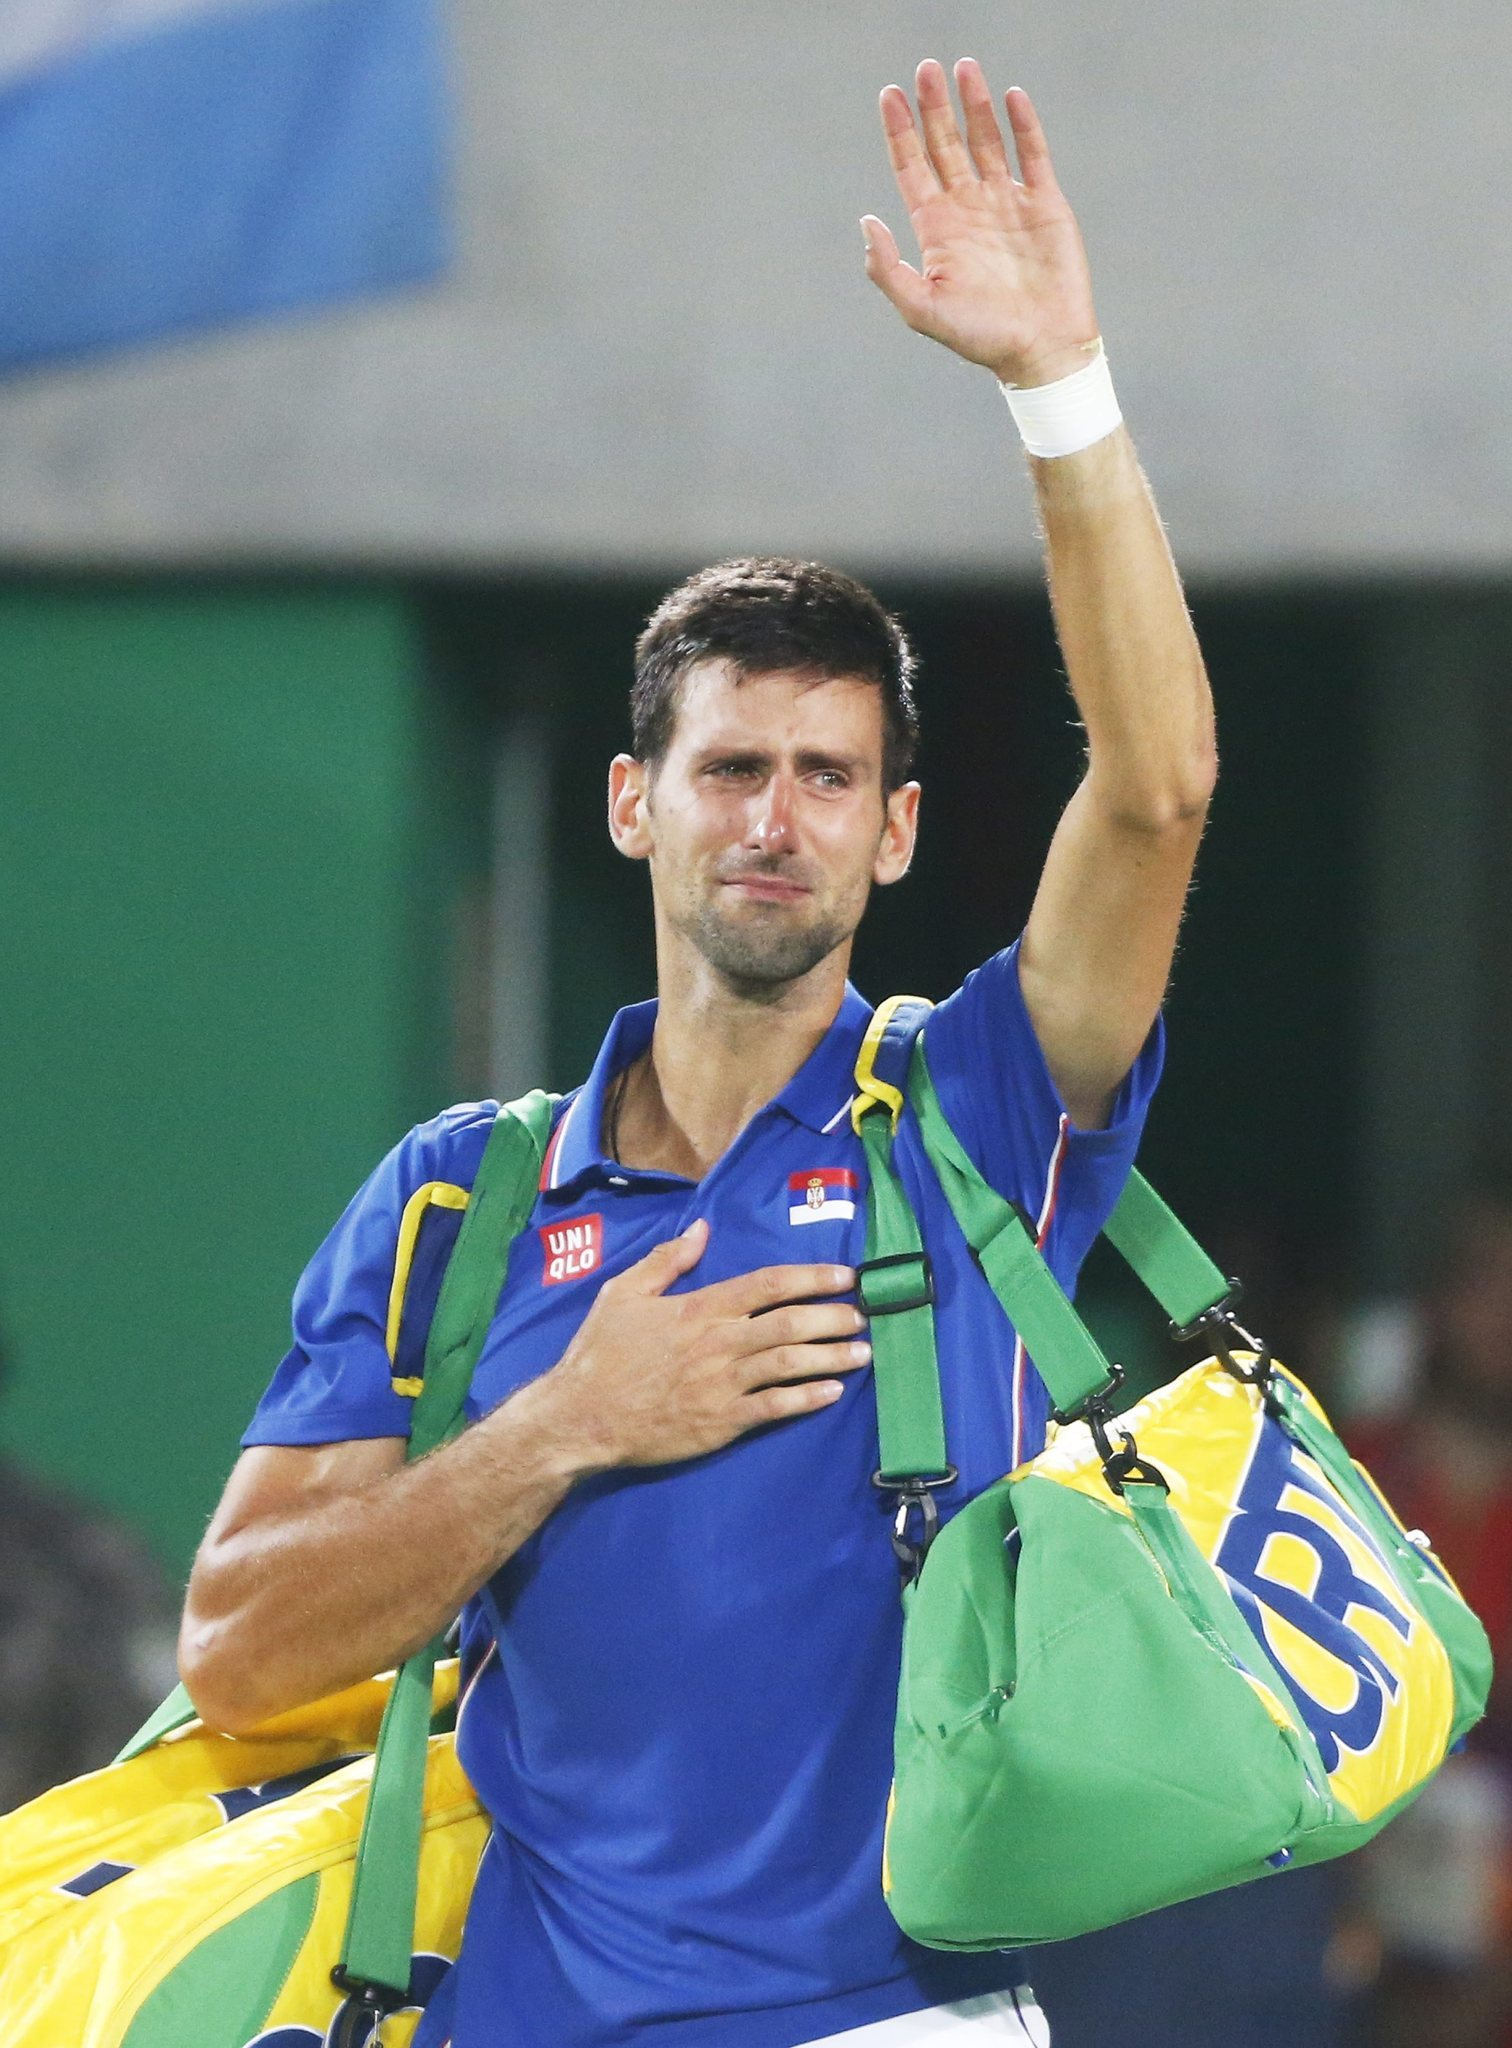 After wild night in Olympic tennis, here's the question: Is more to come?